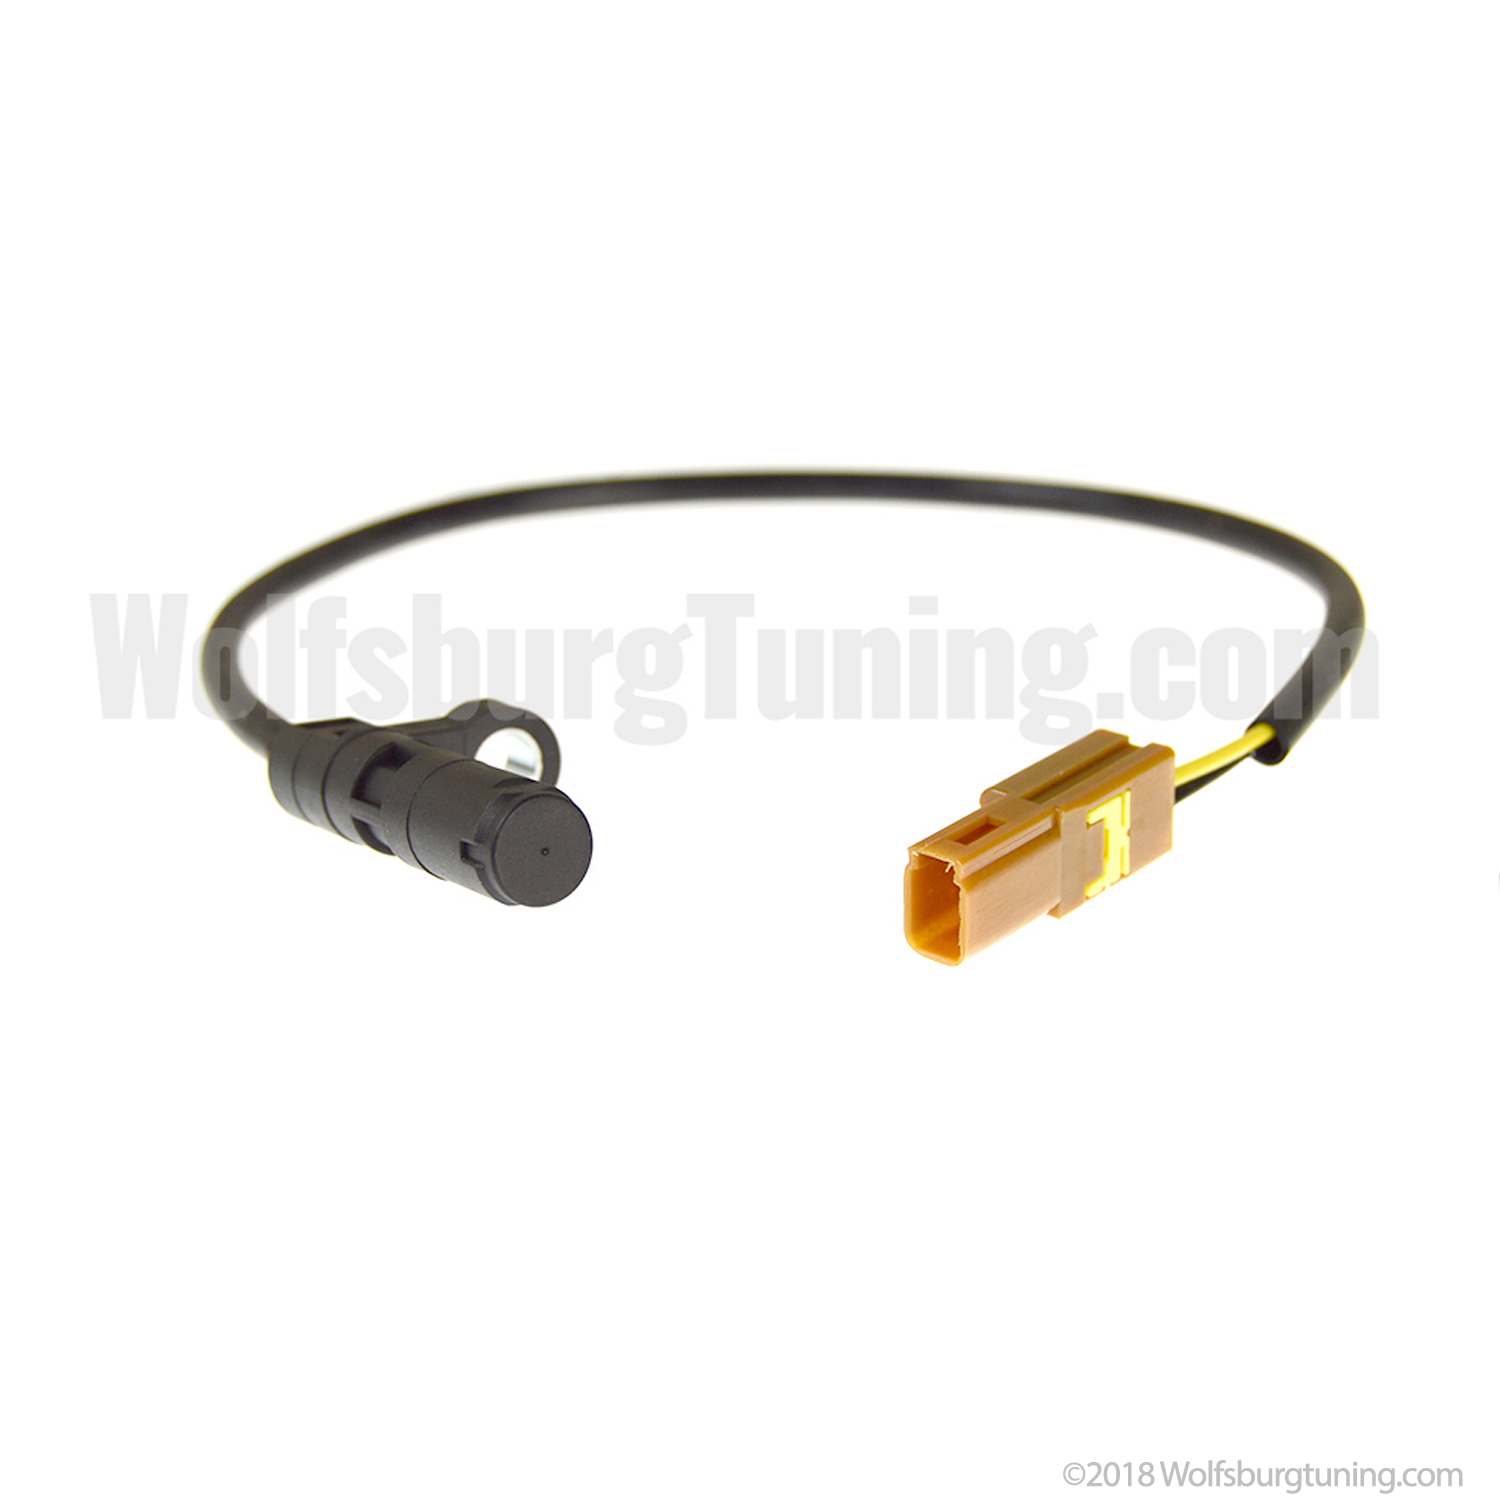 Automatic Transmission Output Speed Sensor A (G195)